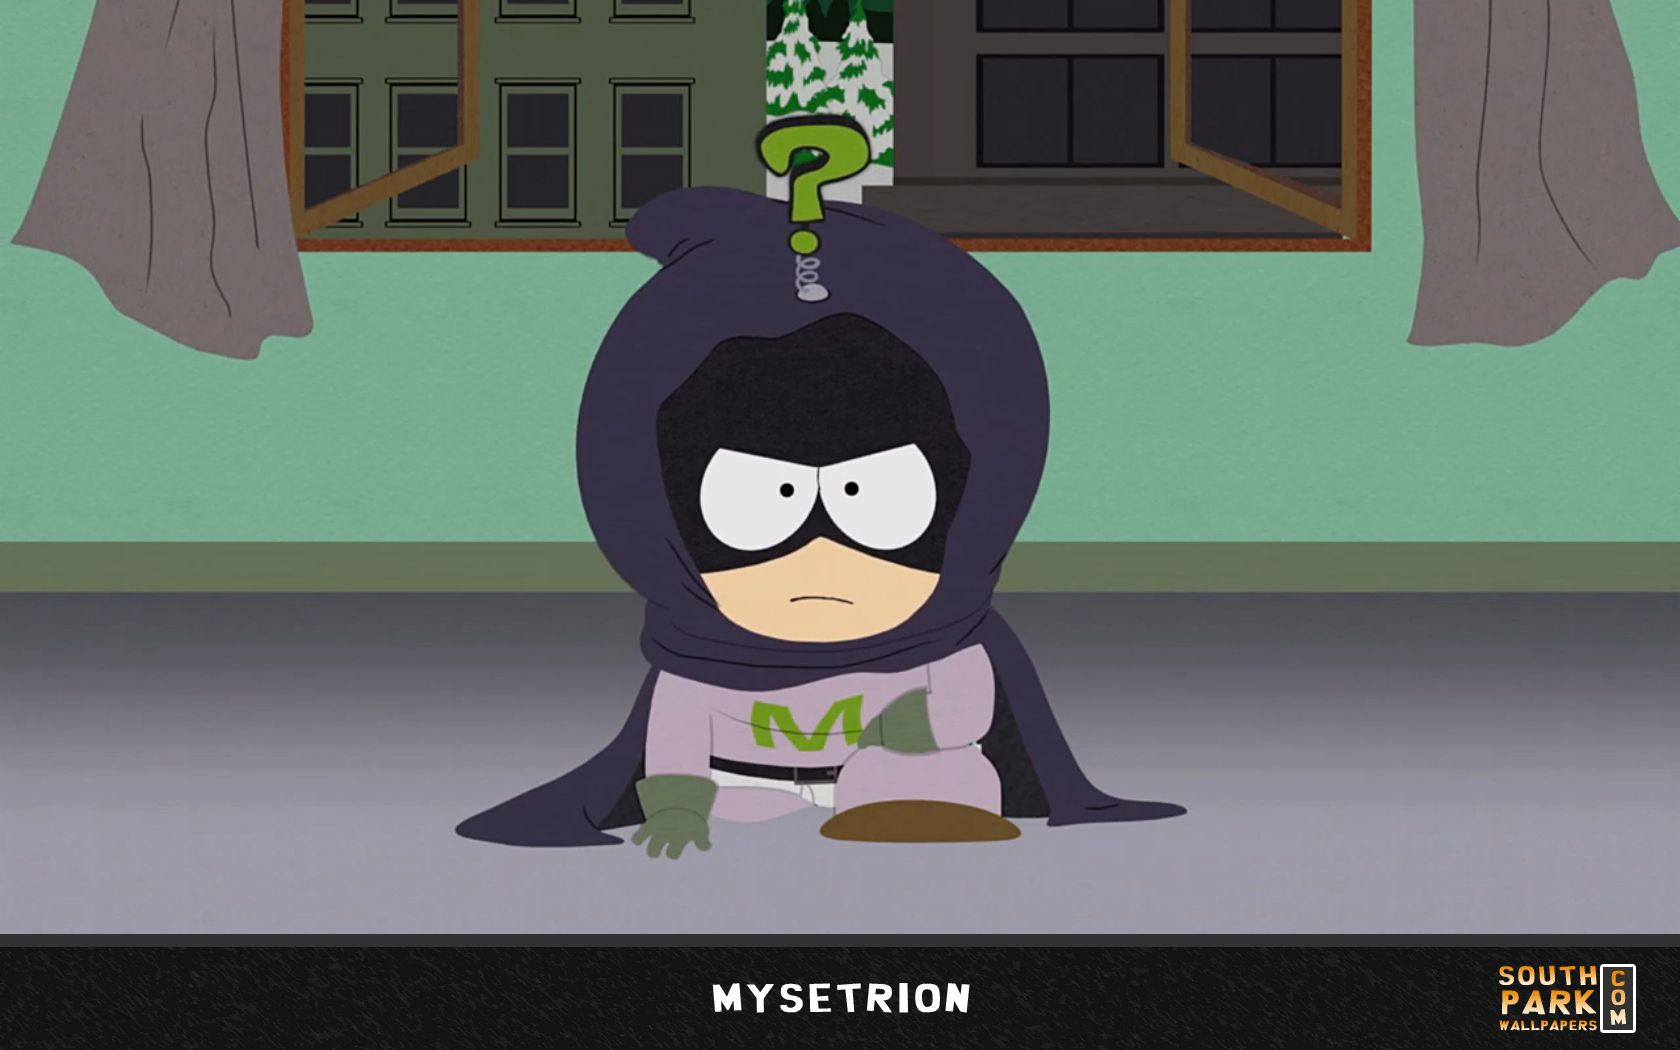 South park kenny mysterion